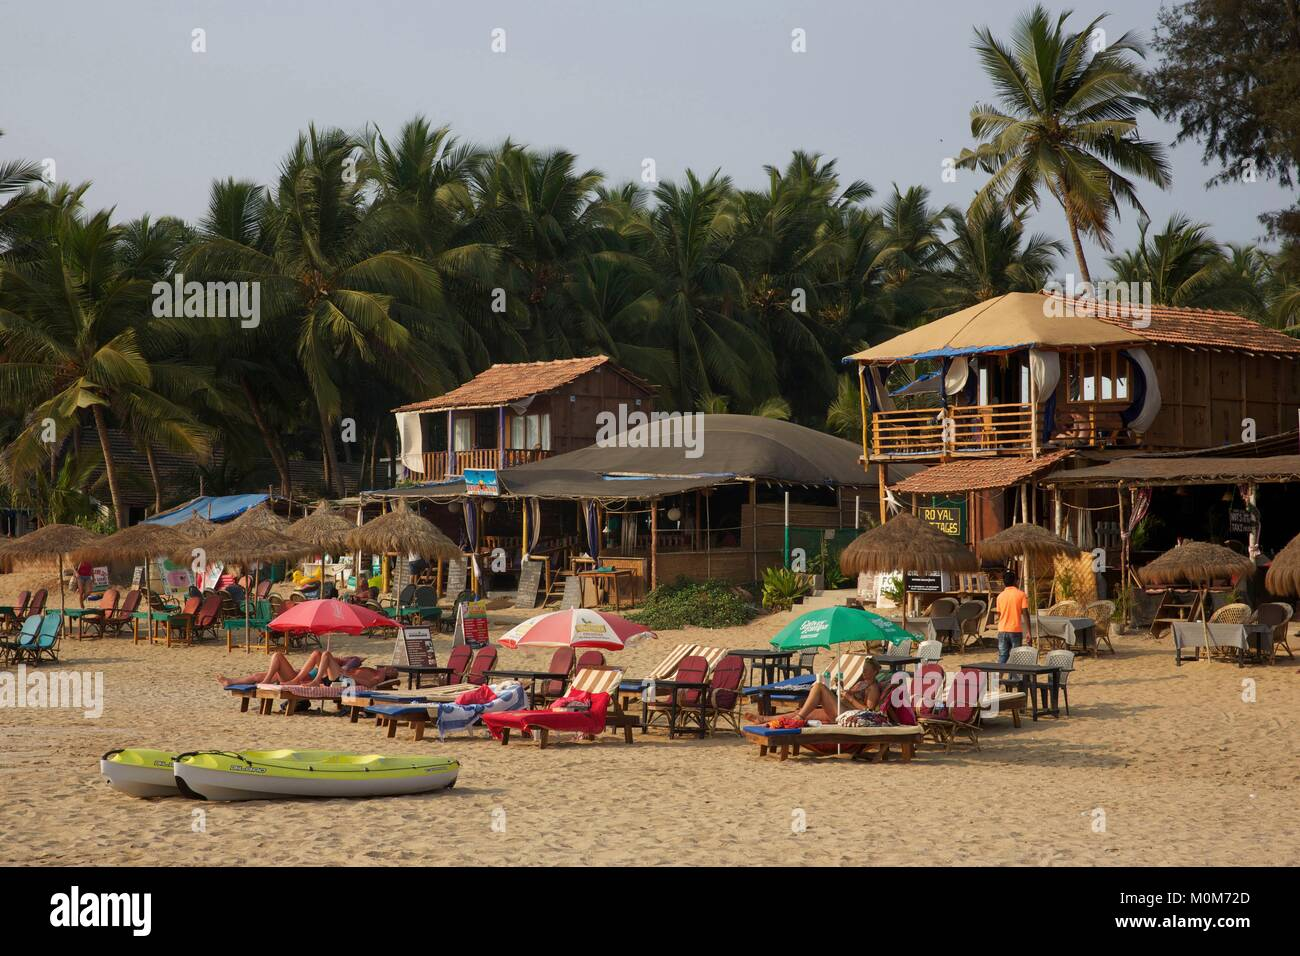 India,Goa,Patnem beach,tourists lying on deckchairs in the golden sand beach lined with coconut trees,near Palolem - Stock Image